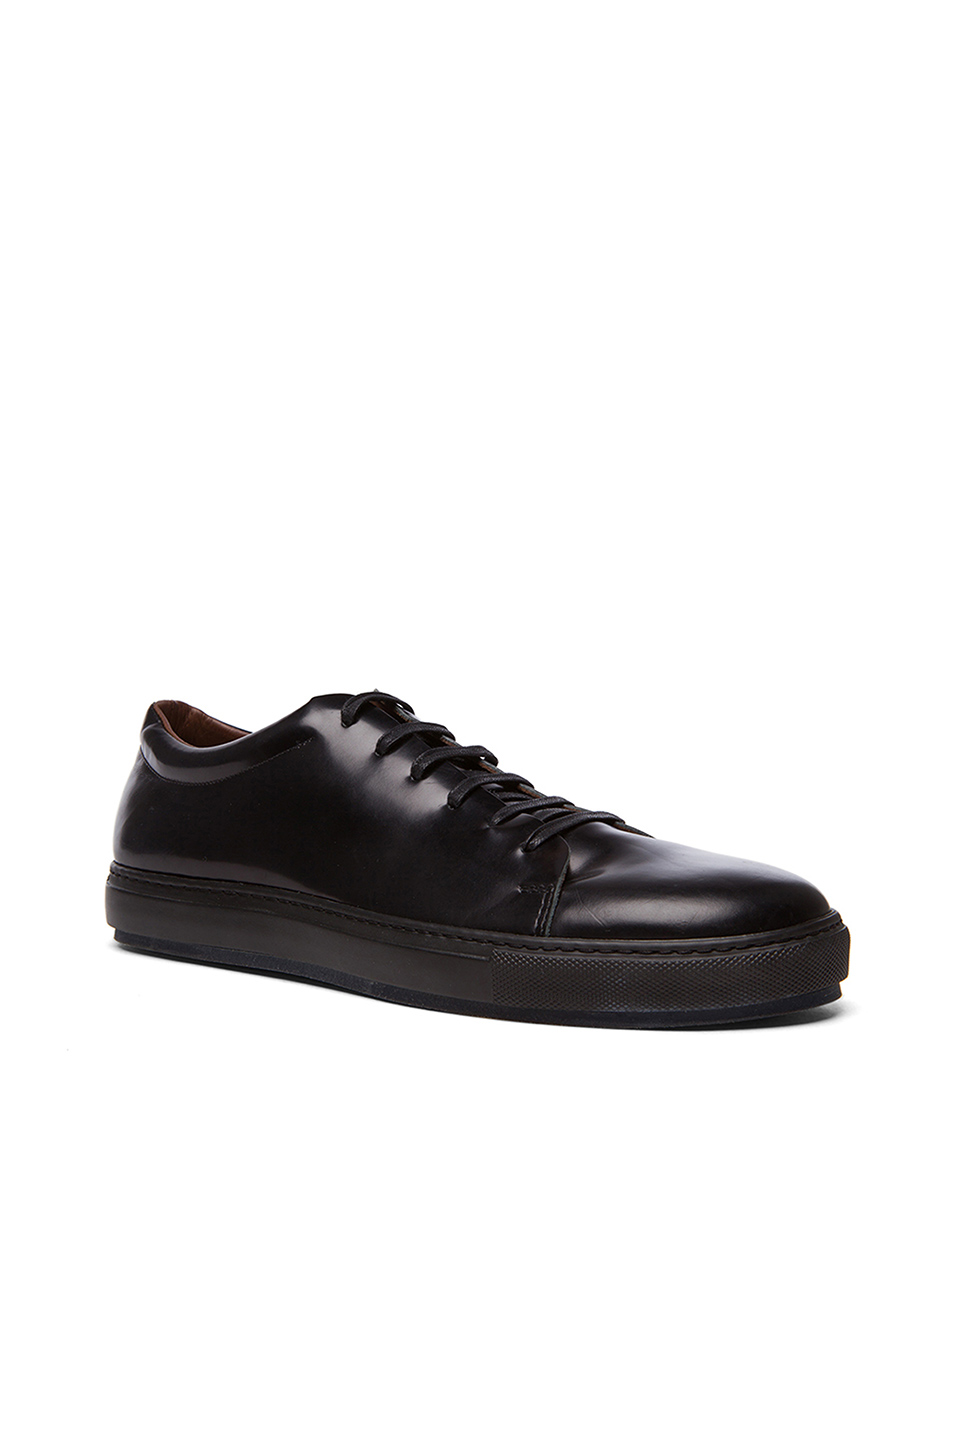 Acne Studios Adrian Calfskin Leather Sneakers in Black